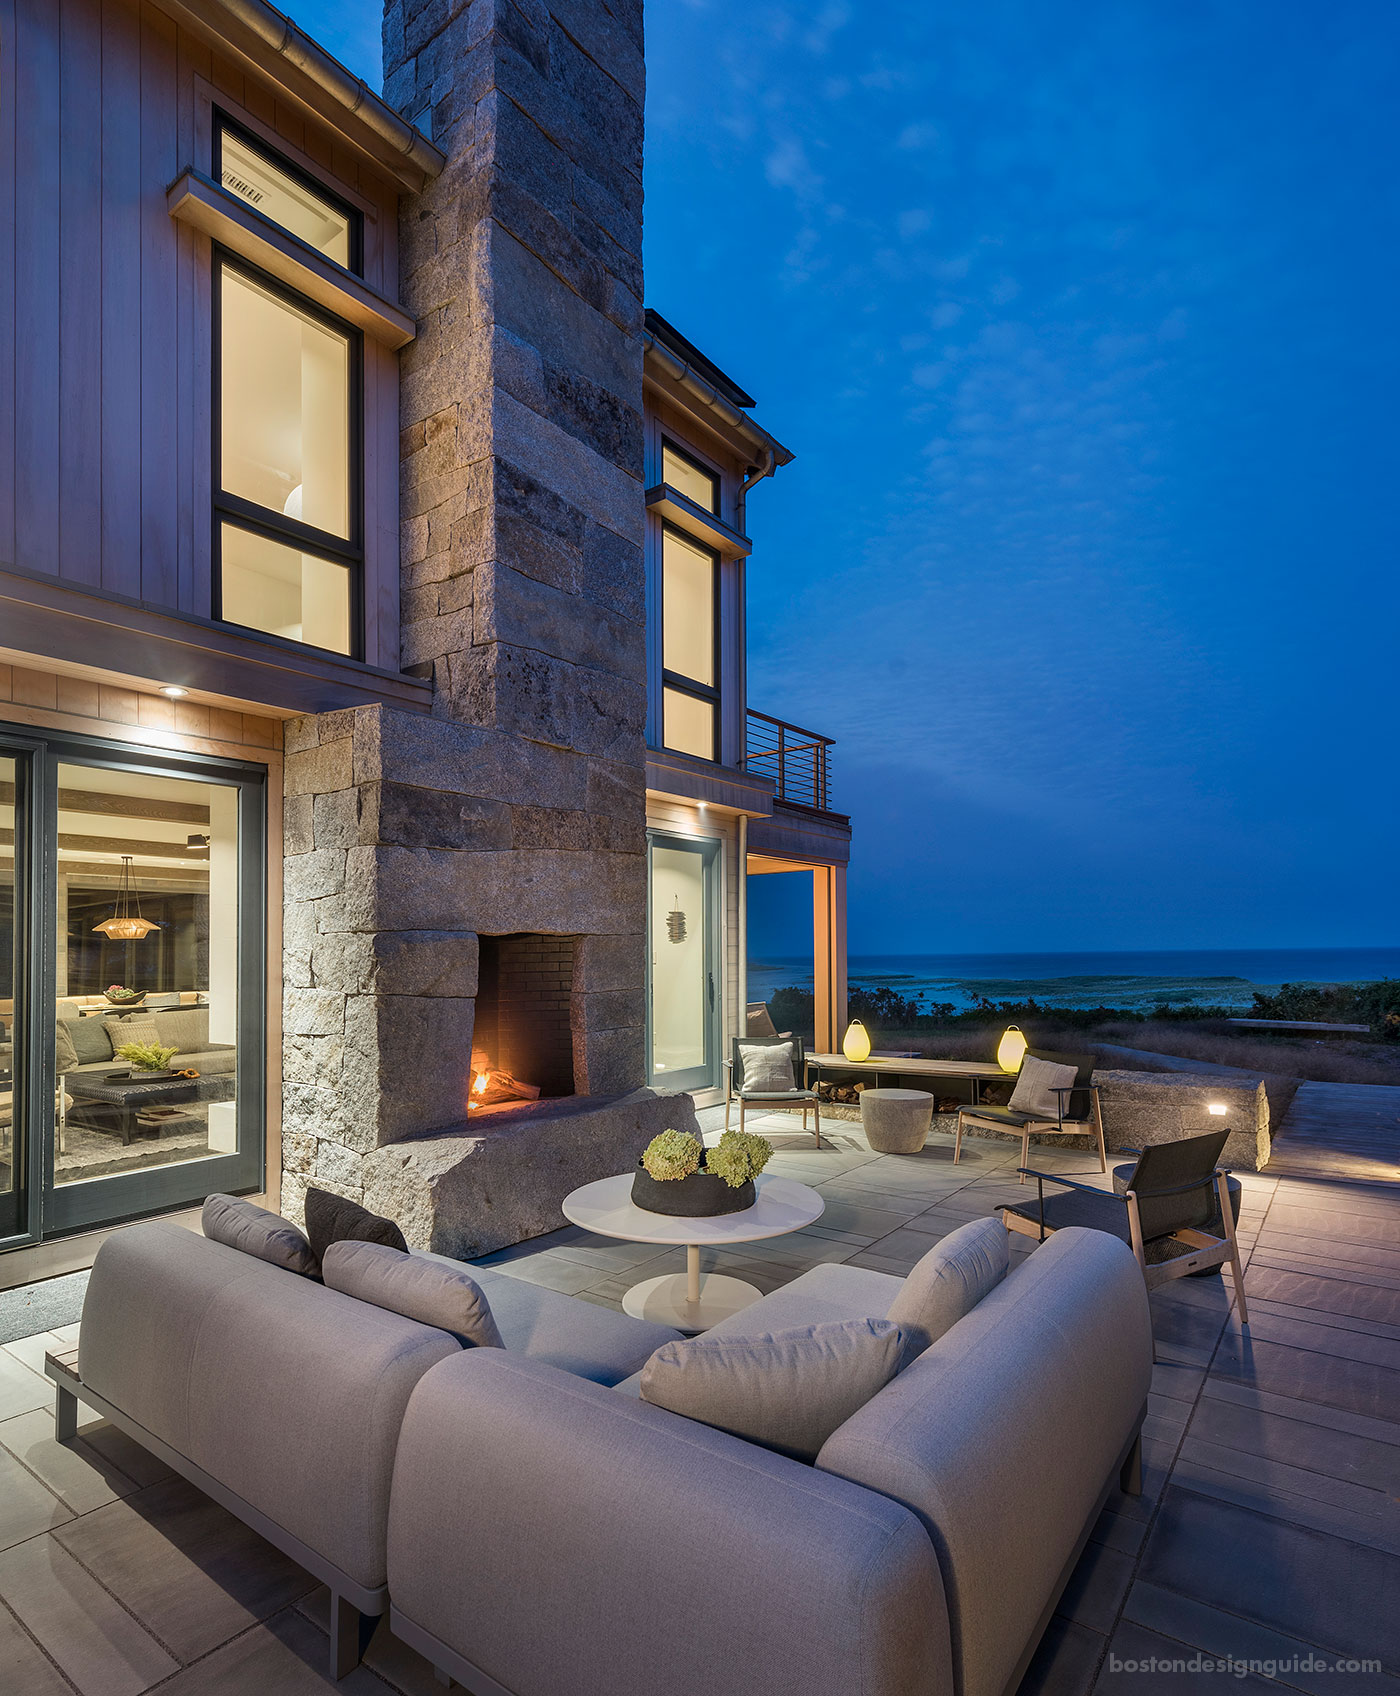 Organic beachside terrace with fireplace, designed by SiteCreative landscape architects